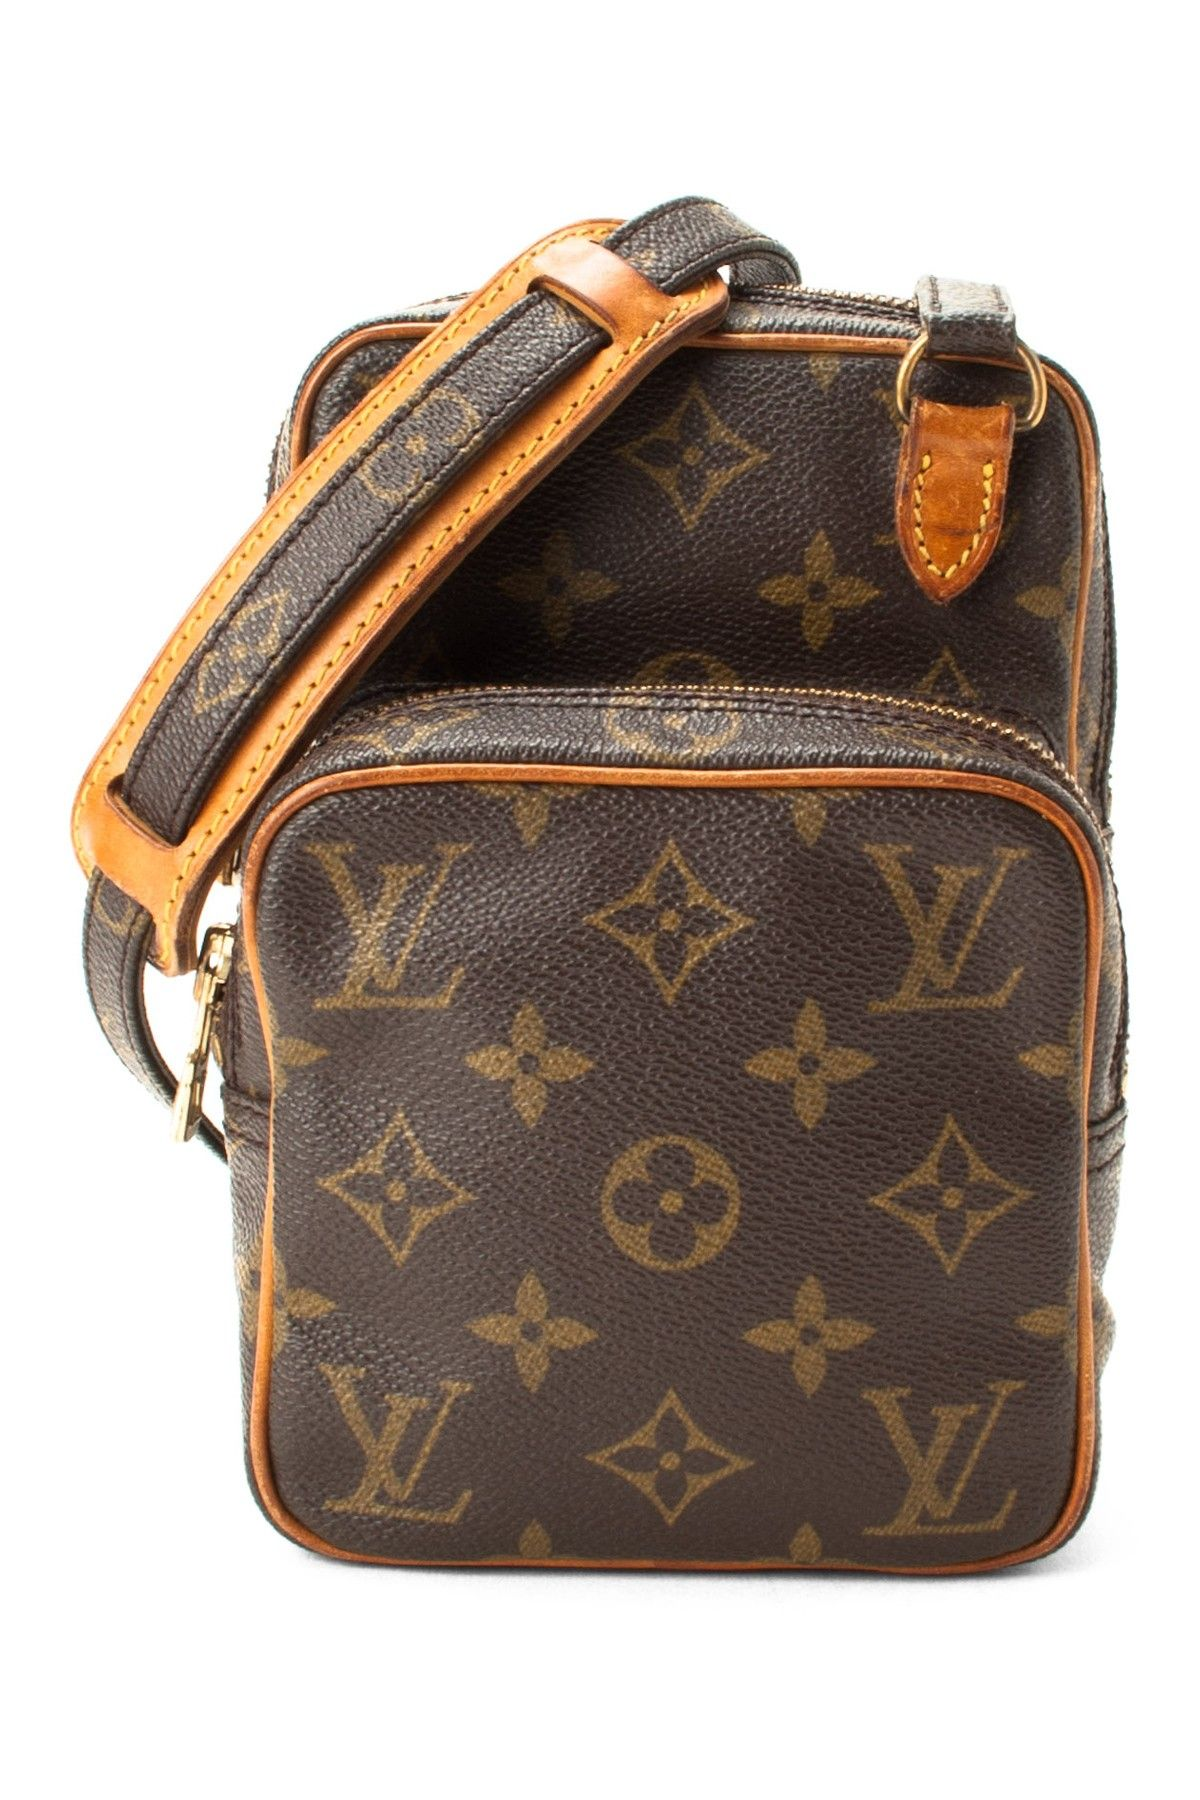 Vintage Louis Vuitton Leather E Shoulder Bag This Would Make School A Lot Less Scary